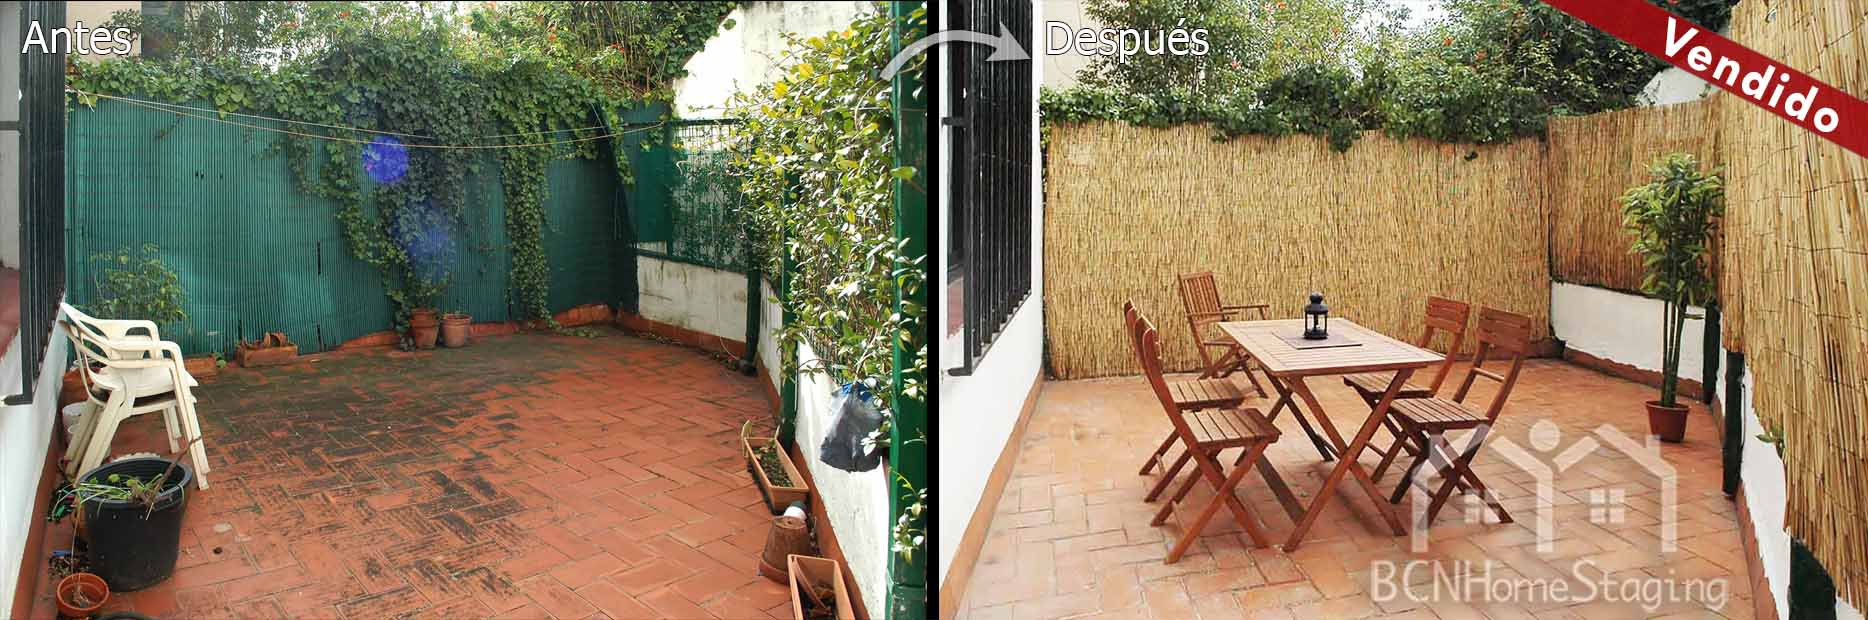 home-staging-barcelona-exterior-terrassa-antes-despues